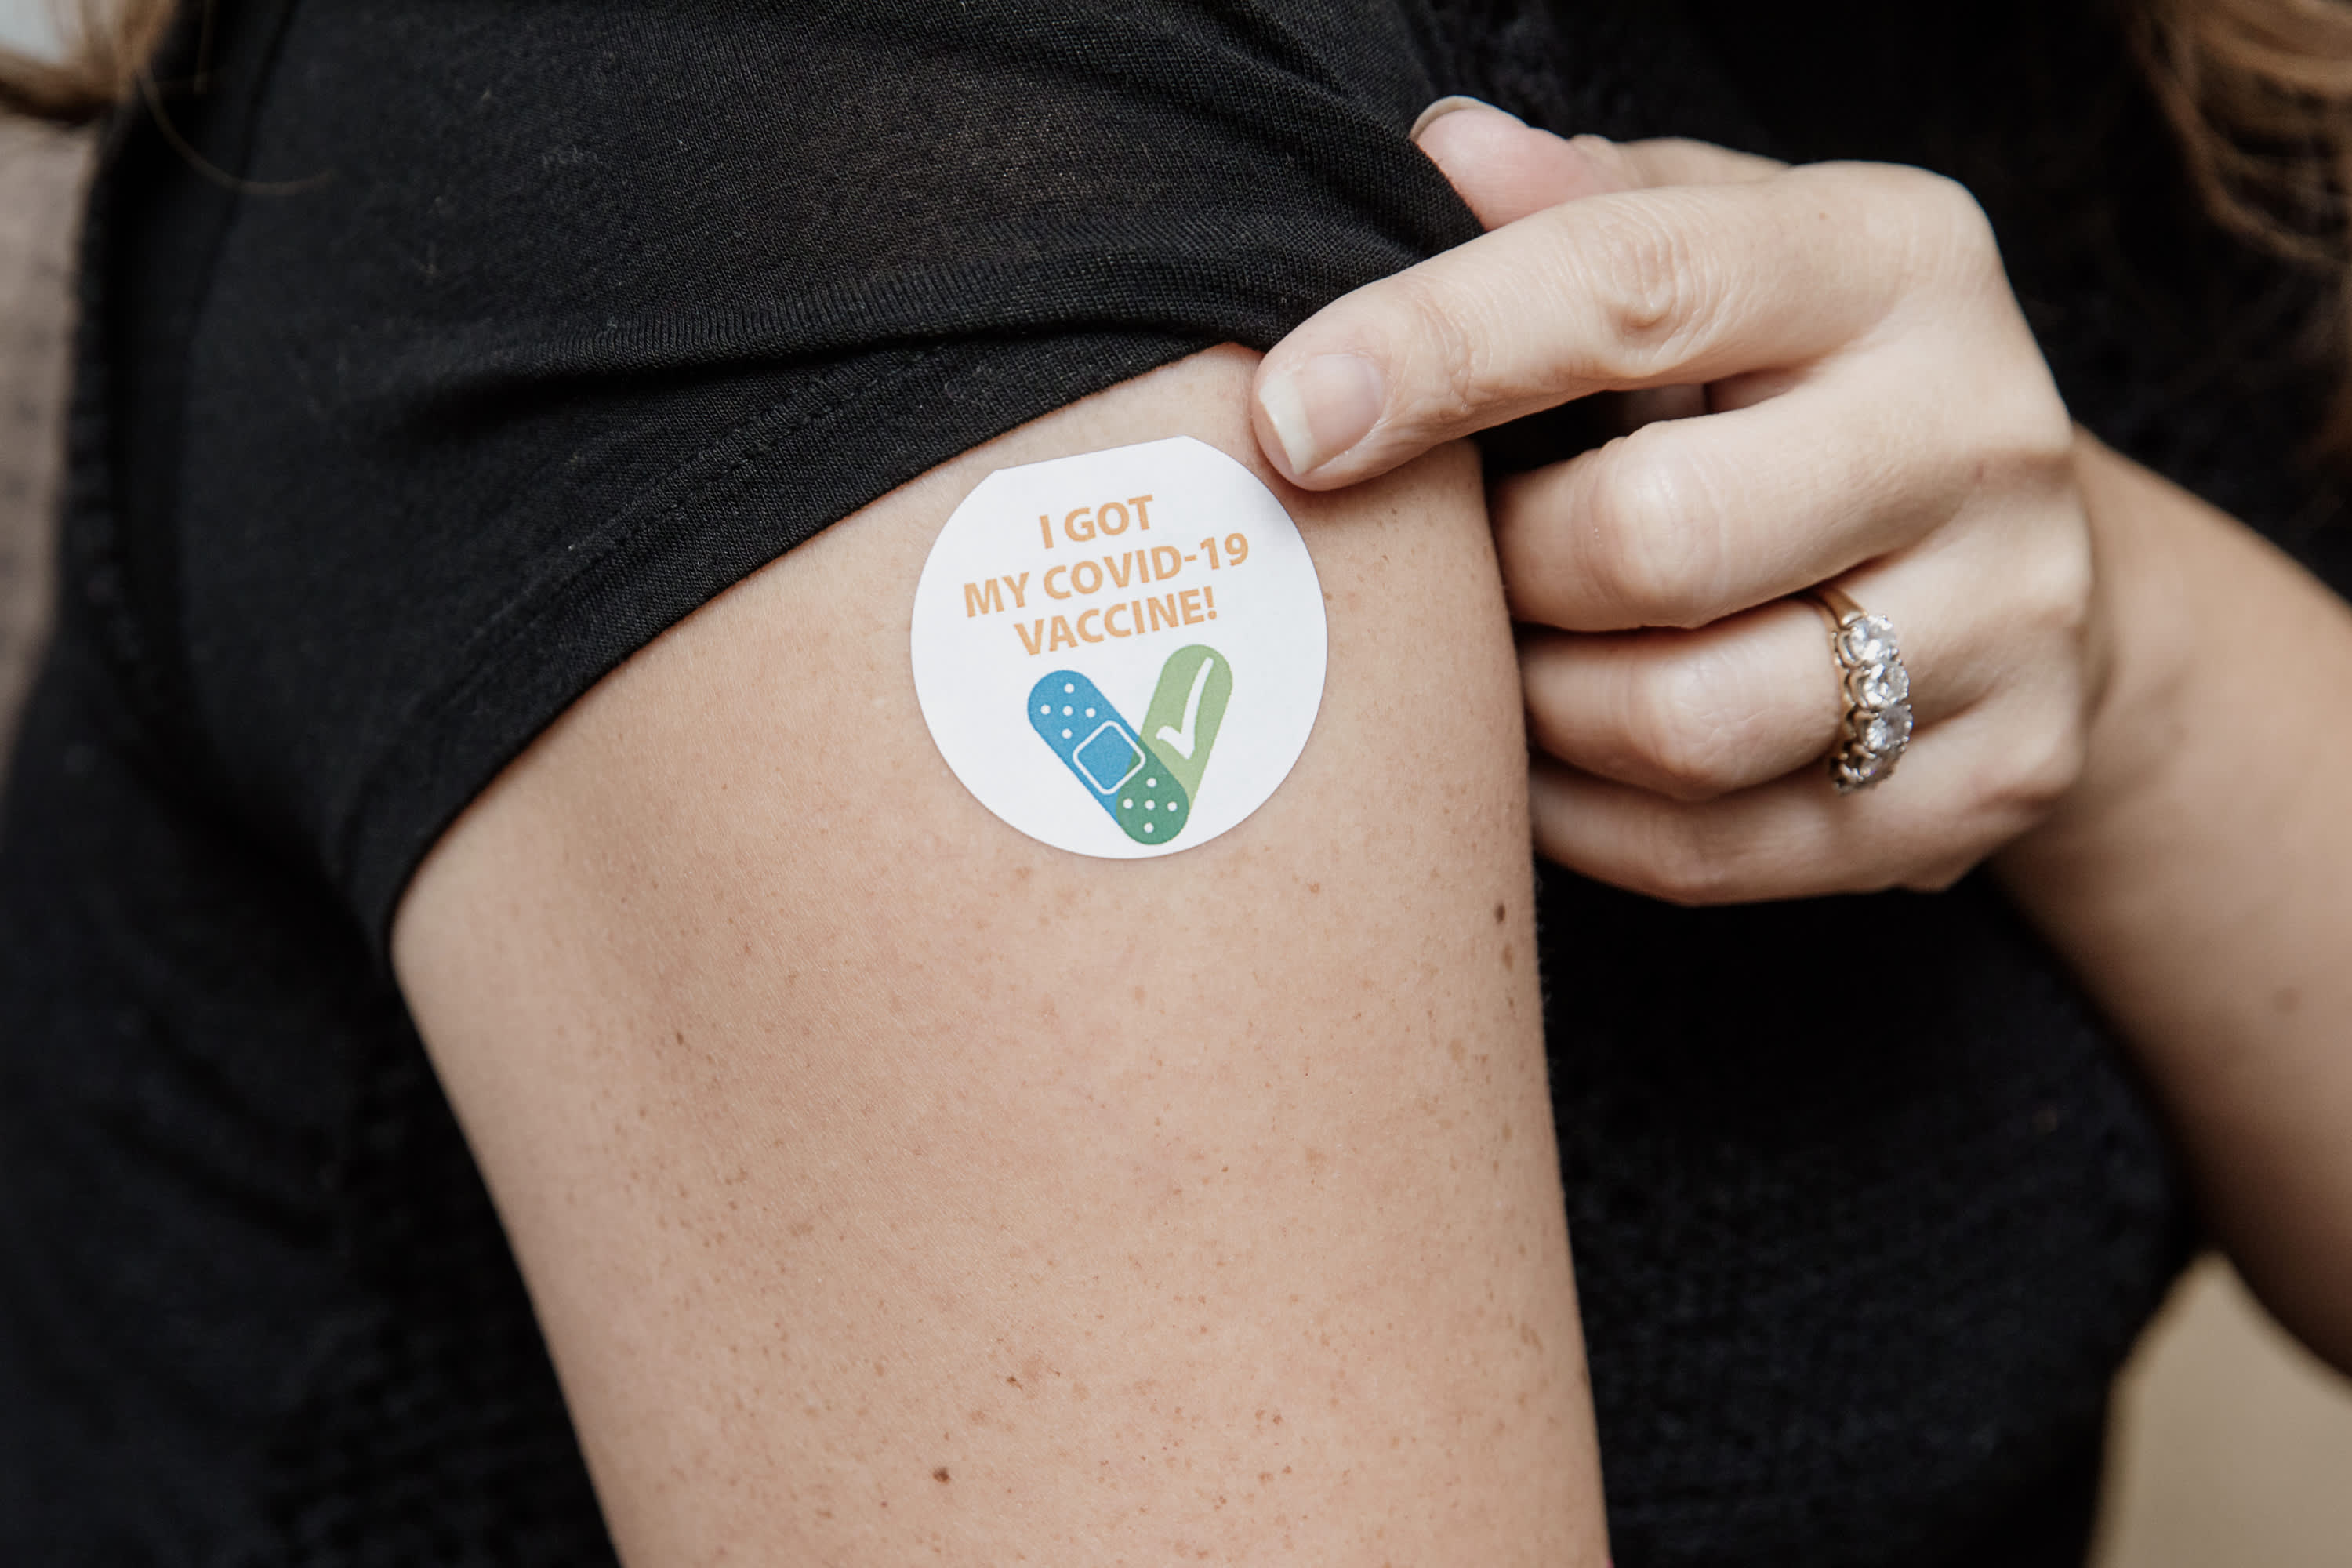 Sandra Trevino, LCSW, with a sticker after having received the COVID-19 vaccine